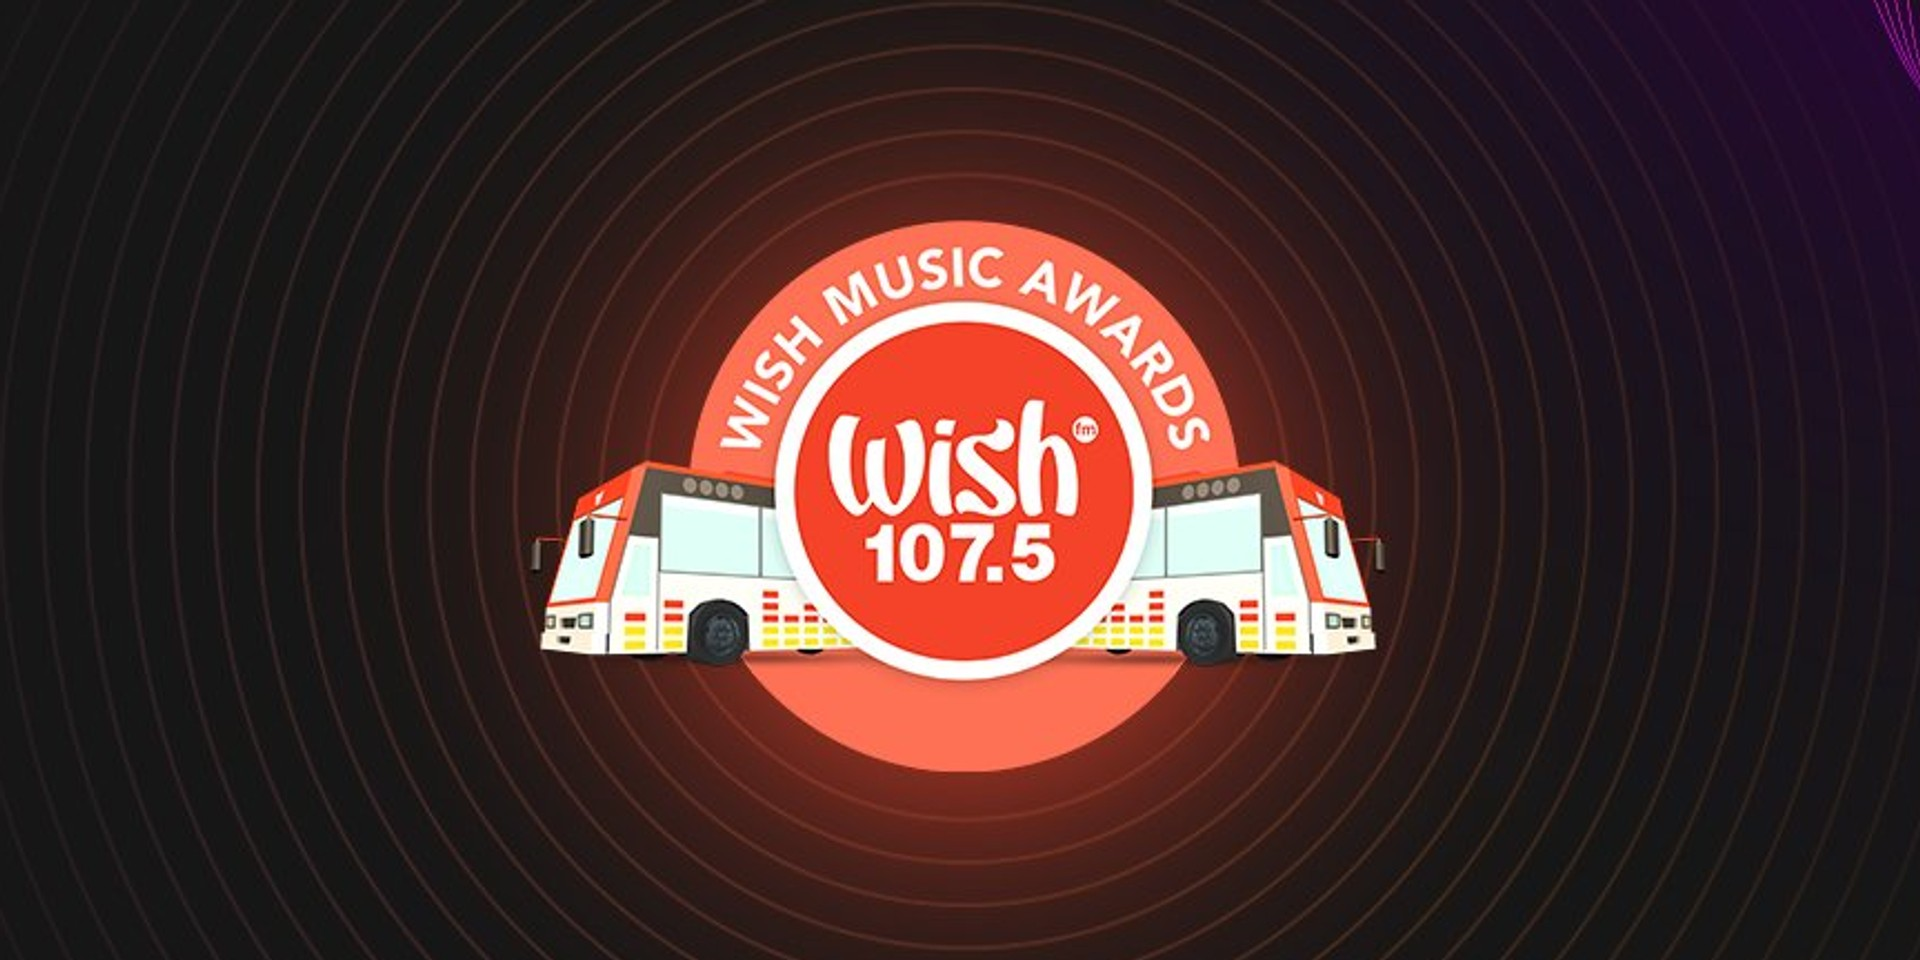 Here are the winners of the 6th Wish Music Awards – SB19, Ben&Ben, ZILD, Gloc-9, Unique, and more